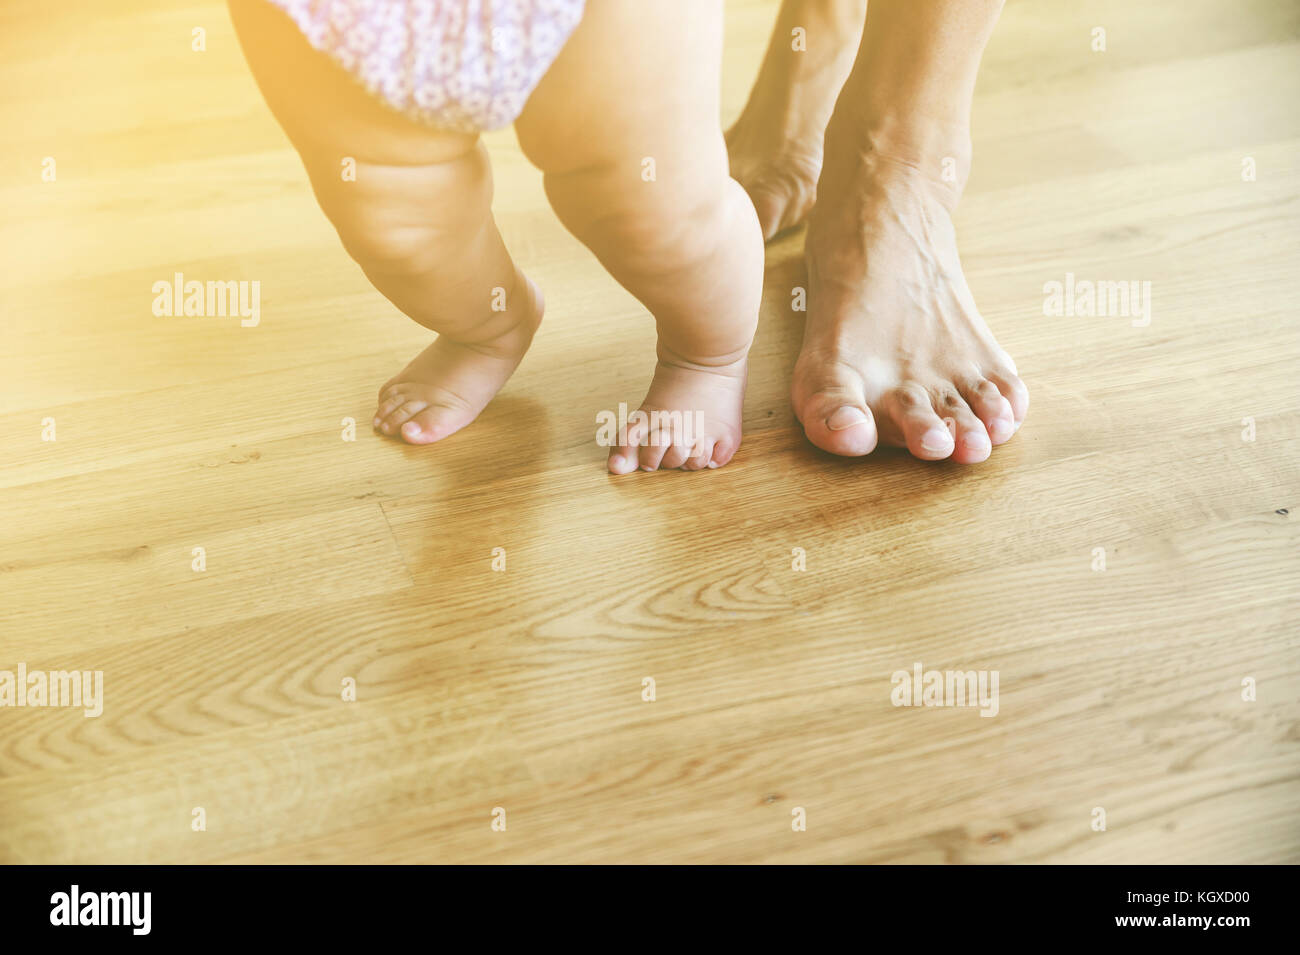 Baby's and mother's feet are walking on the wooden foor. Dream blurry. - Stock Image